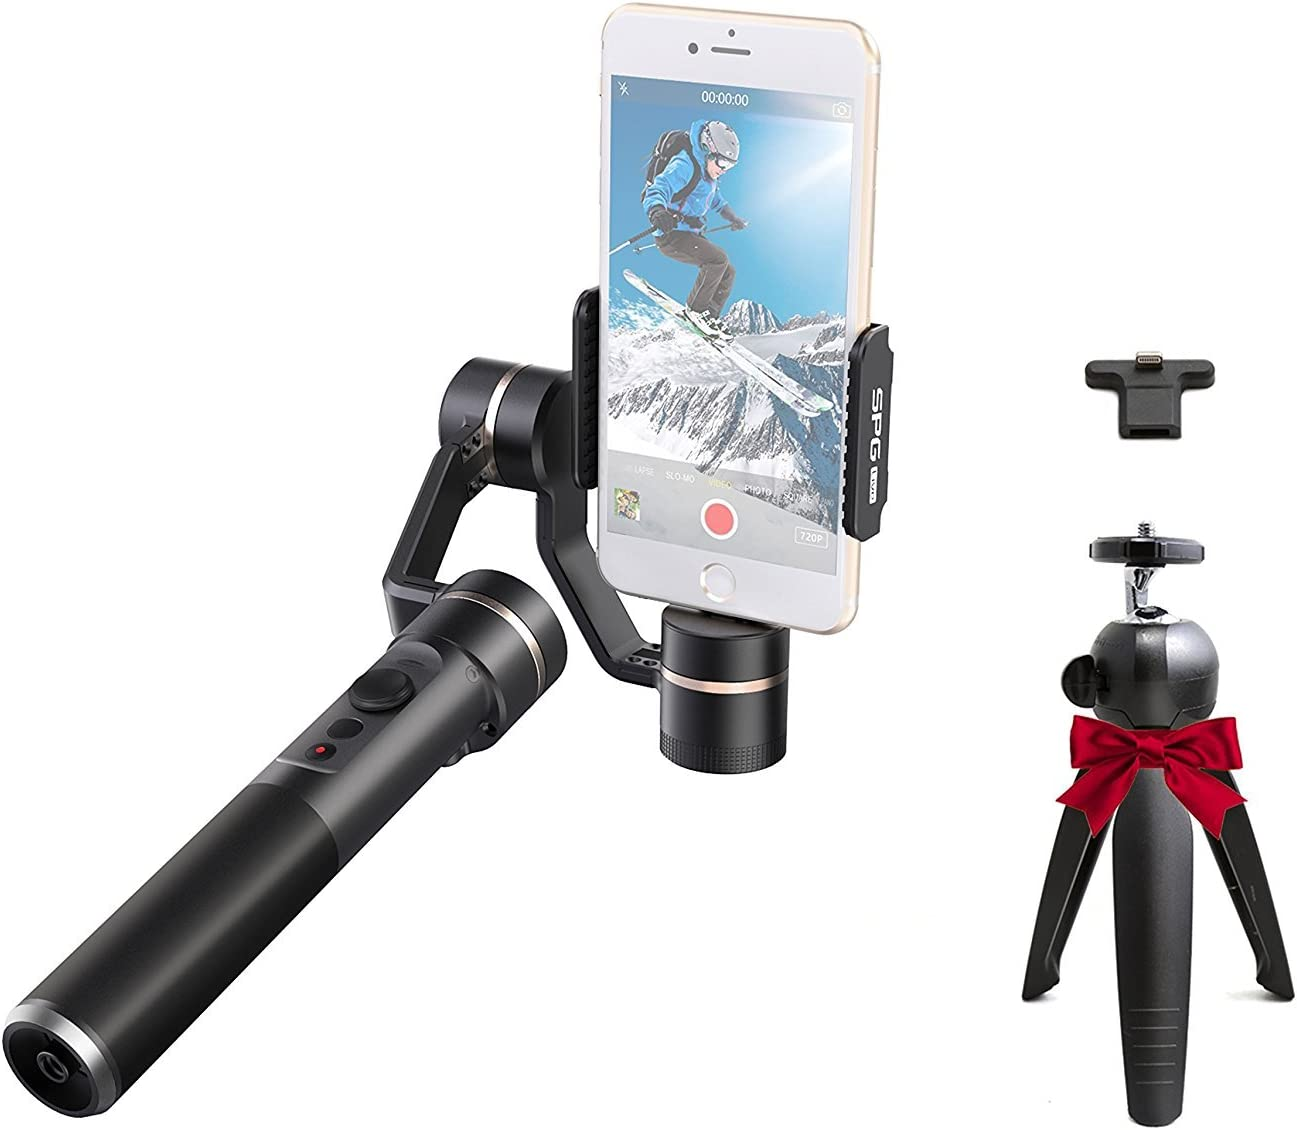 FeiyuTech SPG Live 3-Axis Gimbal, with Live-Streaming Portrait Mode, Adaptable for iPhone Smart Phones, 360 Degree Limitless Panning